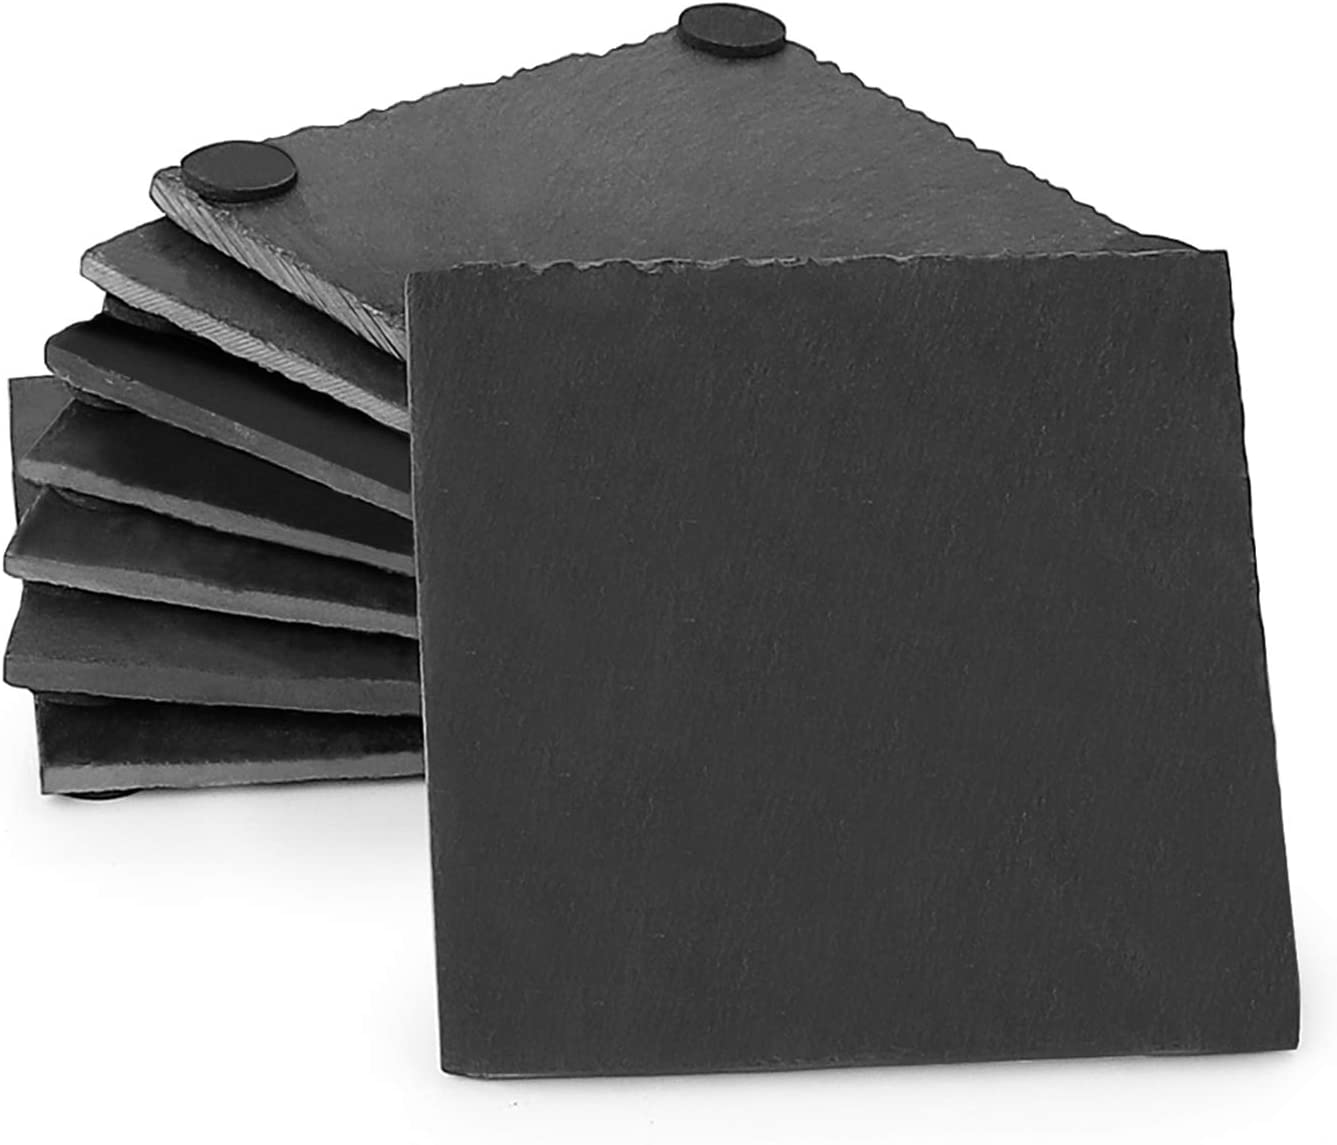 Sweese 240.101 Slate Coasters with 4 Velvet Backing for Drinks - 4 Inch - Set of 8, Square Stone